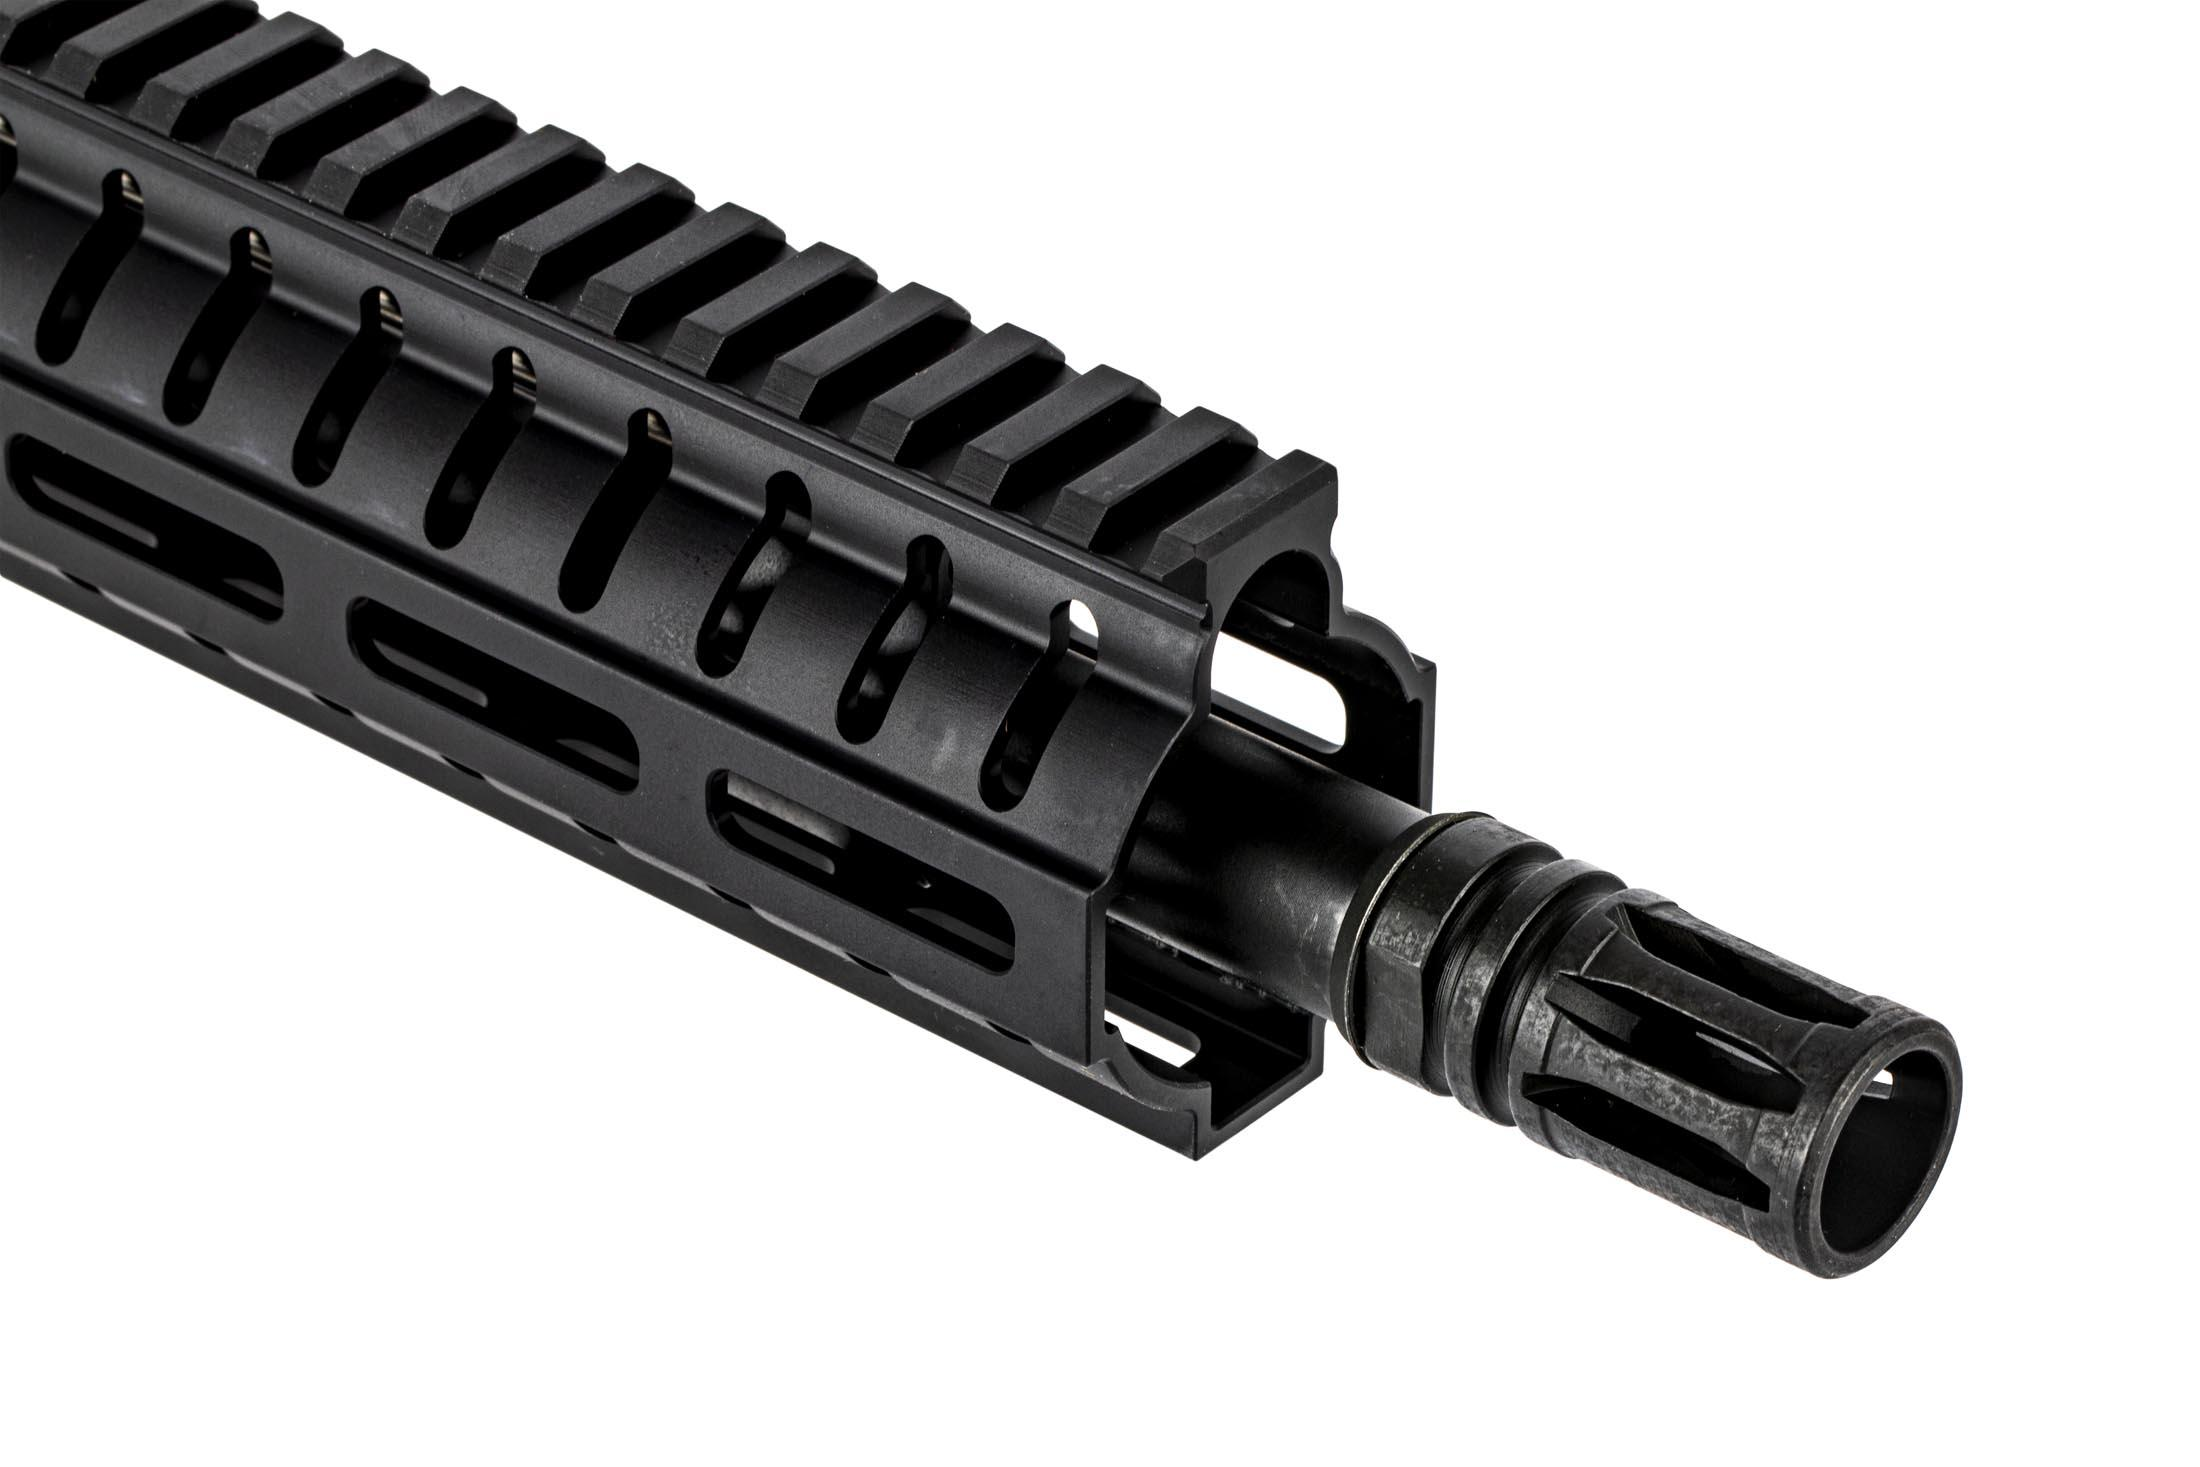 The CMMG Resolute 100 Series 308 upper receiver group features an A2 style flash hider